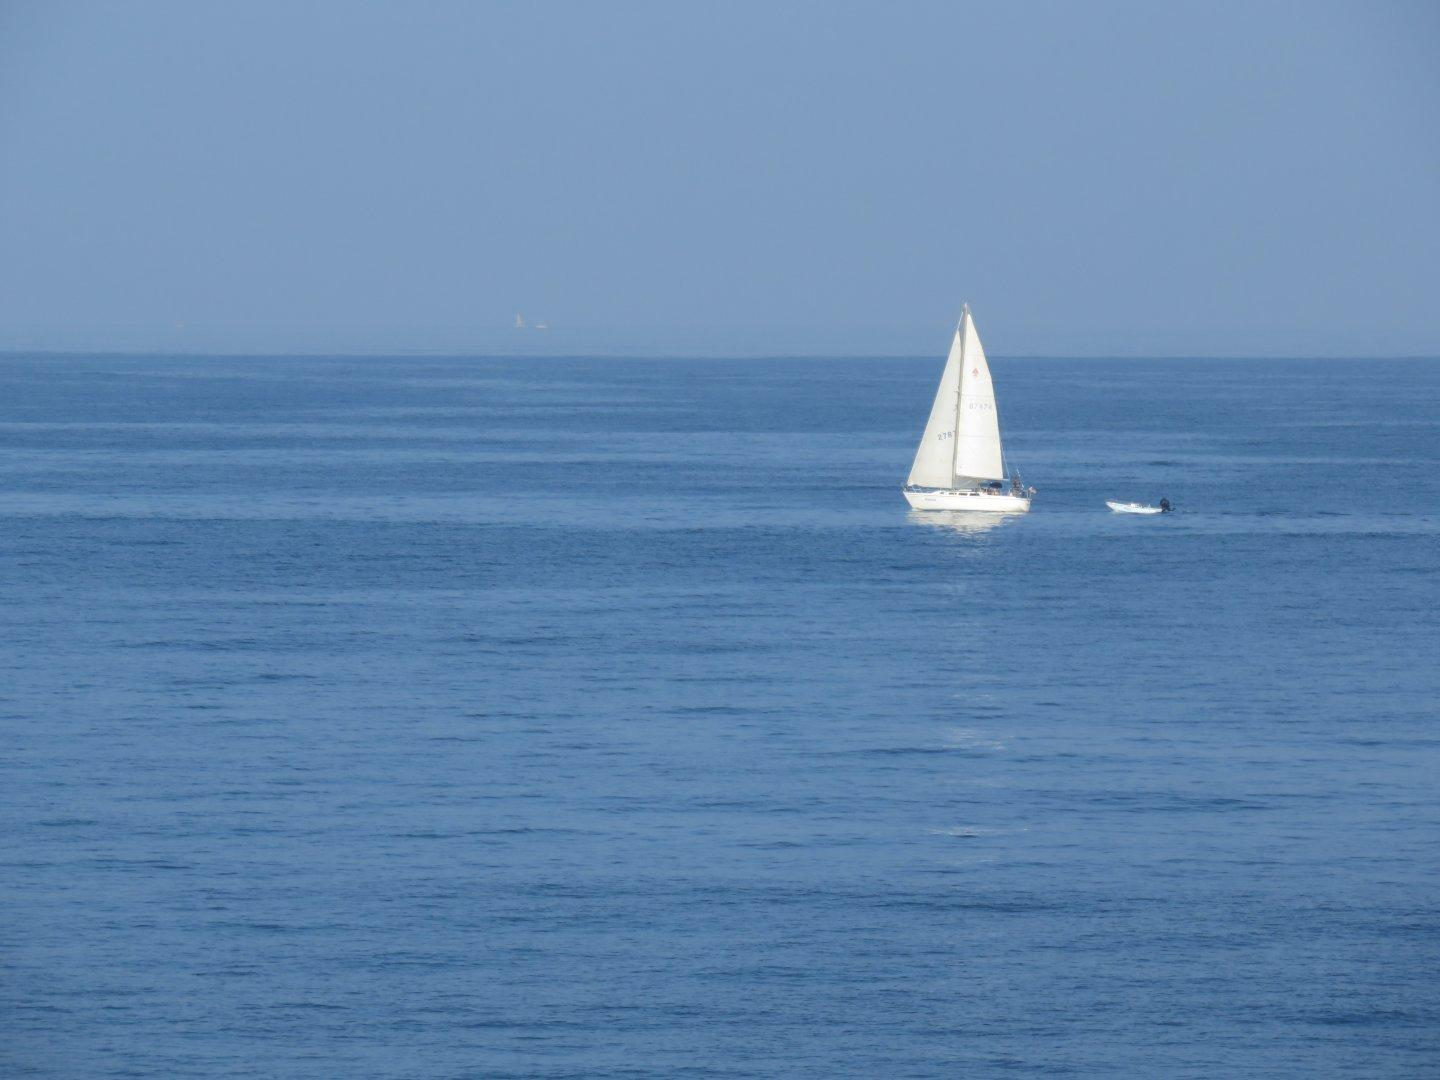 #sailboat on the bay. #ocean